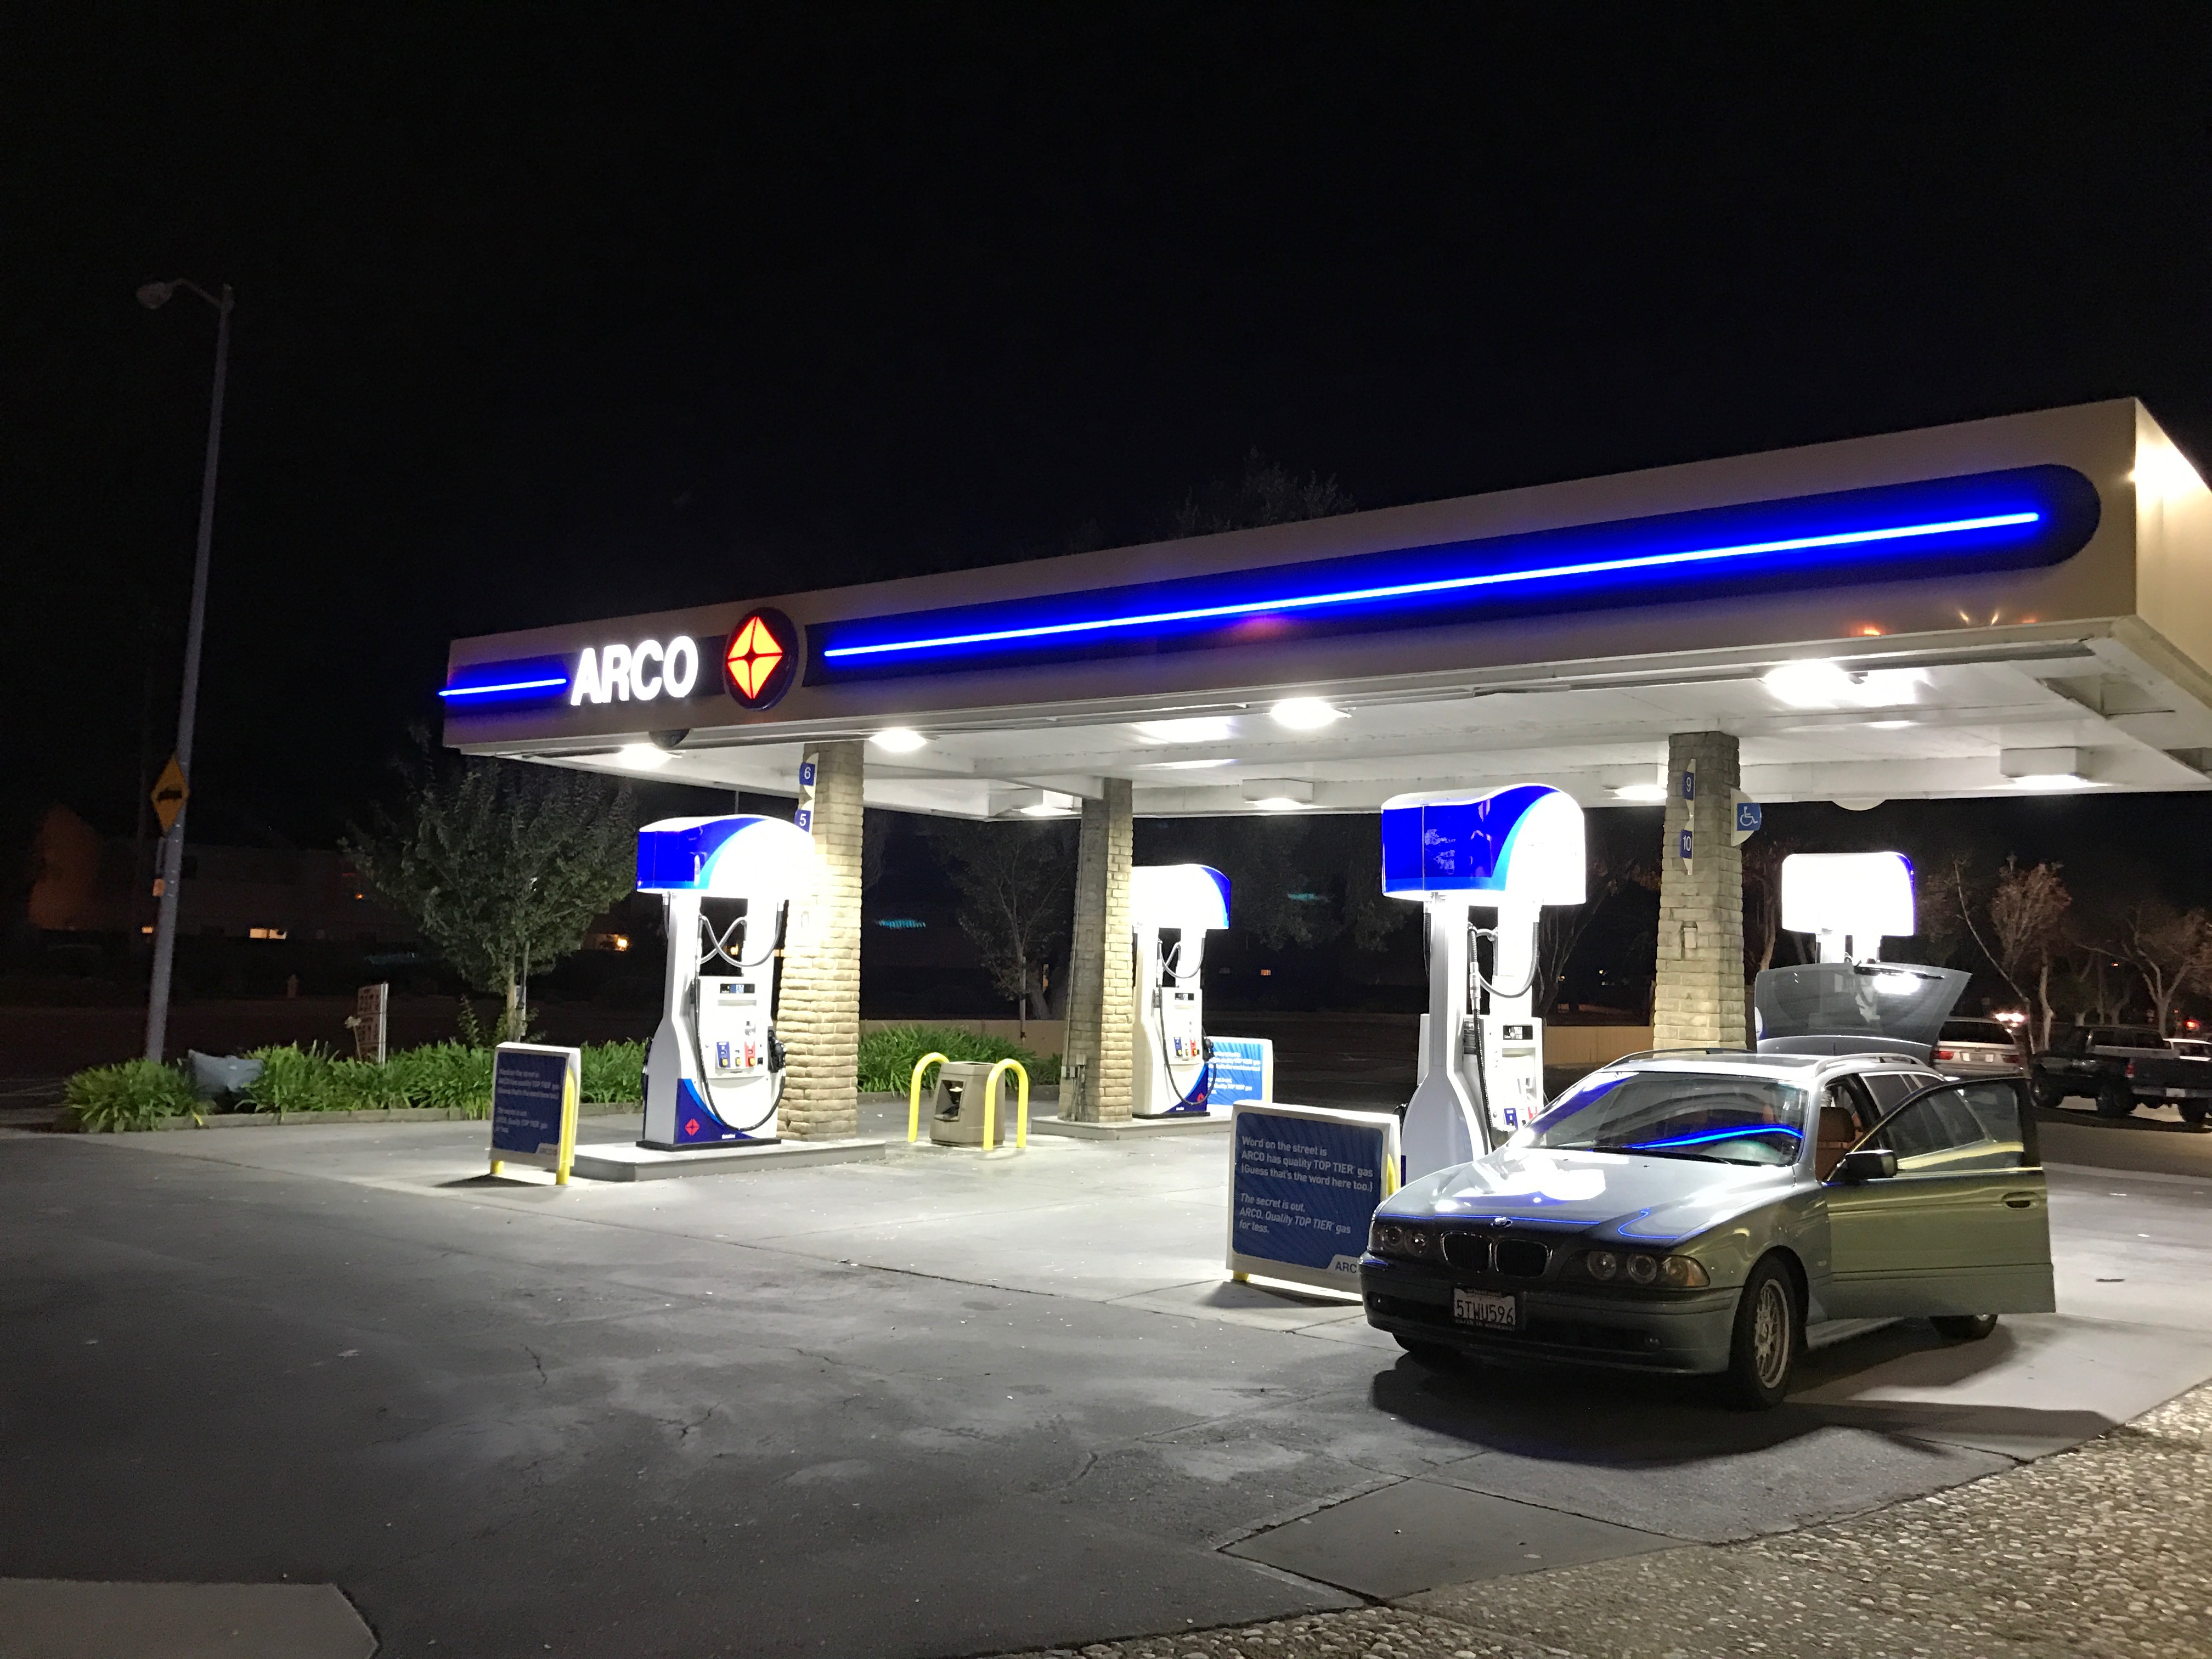 ARCO_gas_station